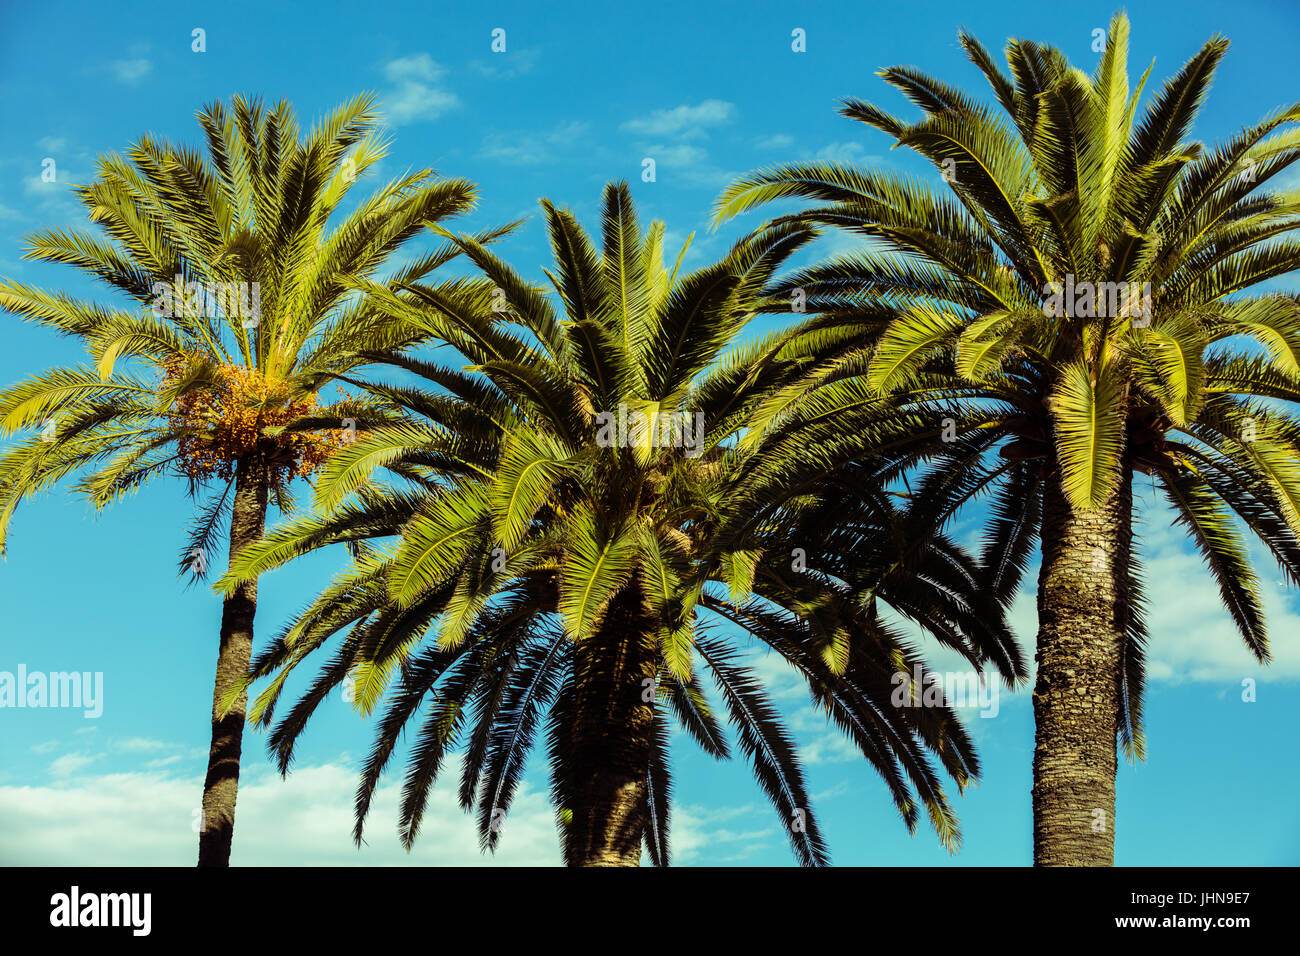 Tropic palm trees against the blue sky - Stock Image